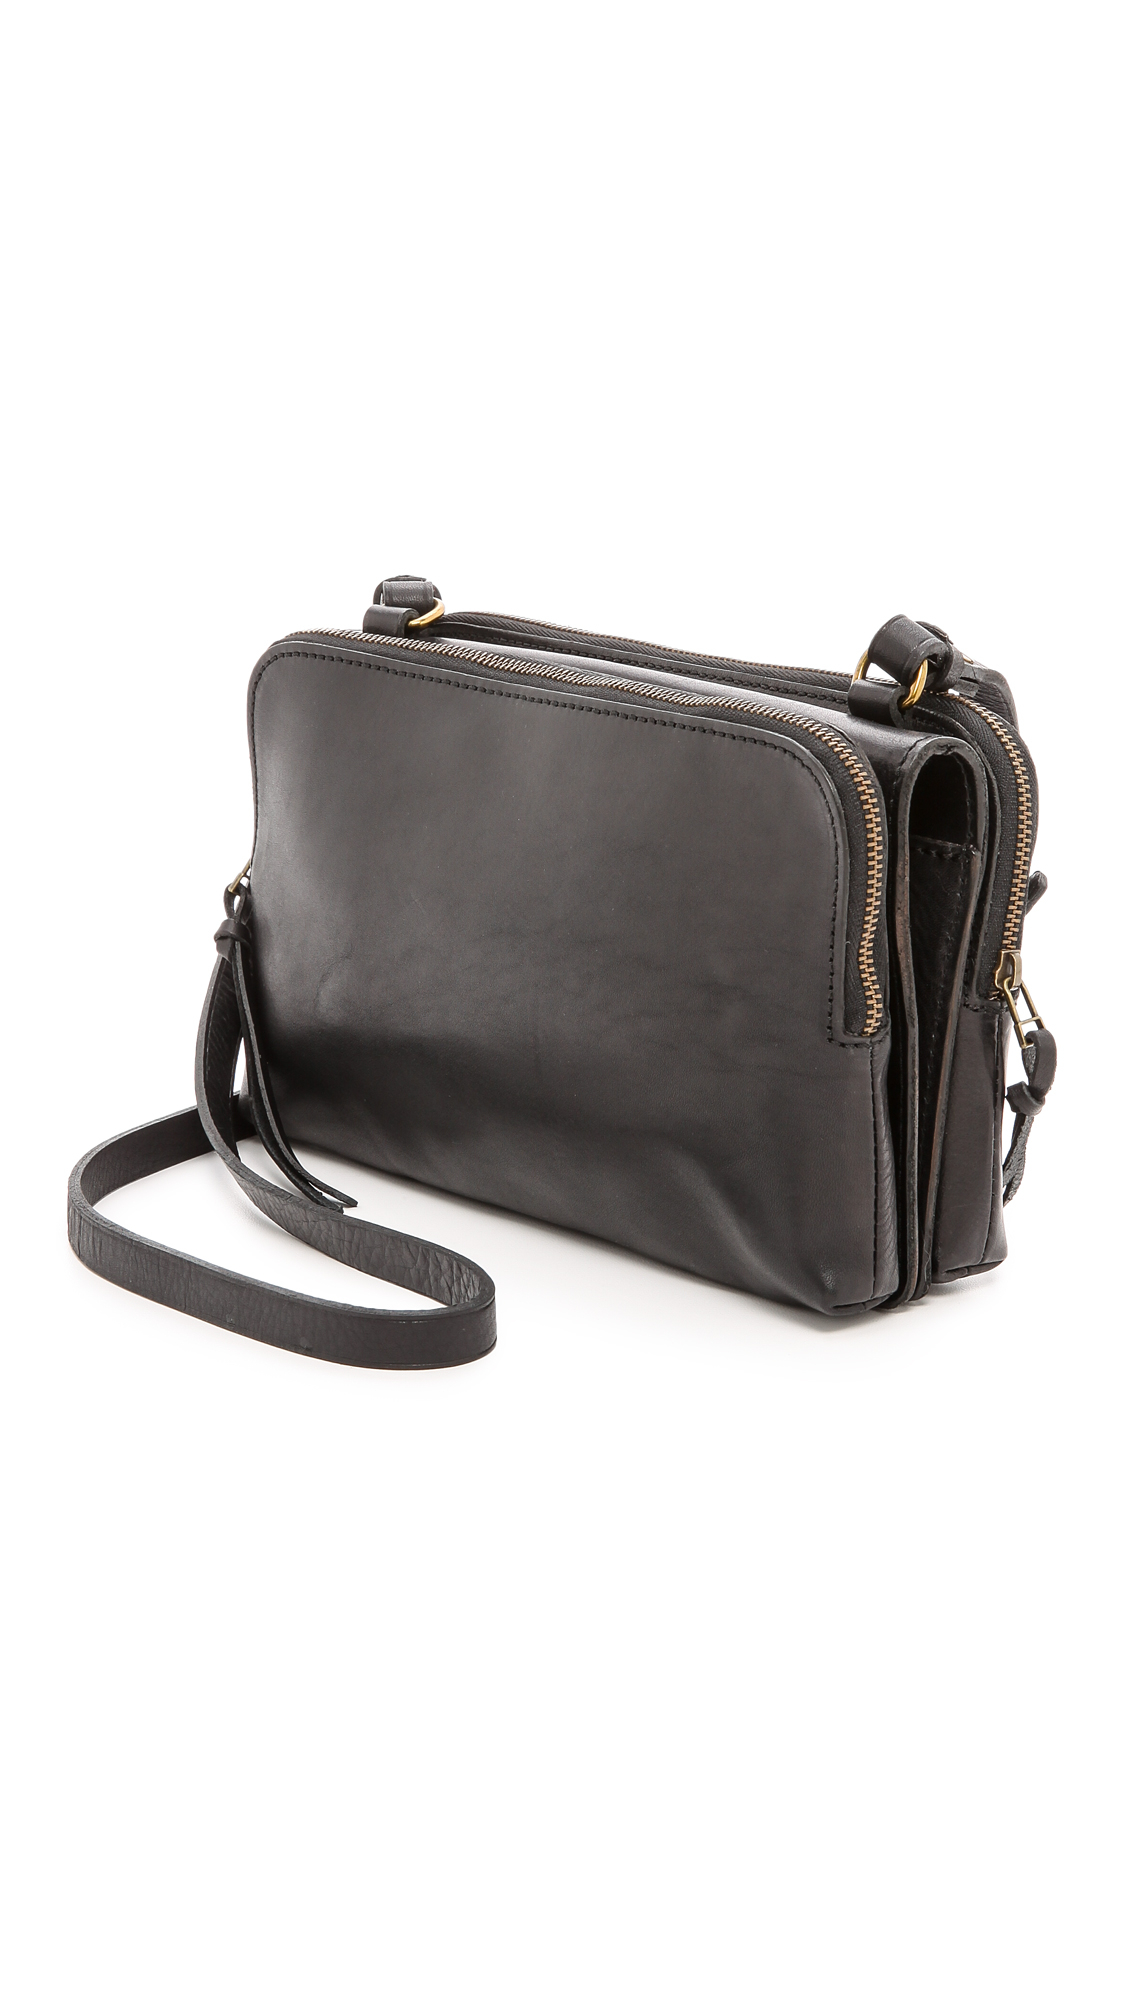 Madewell Twin Pouch Cross Body Bag - True Black